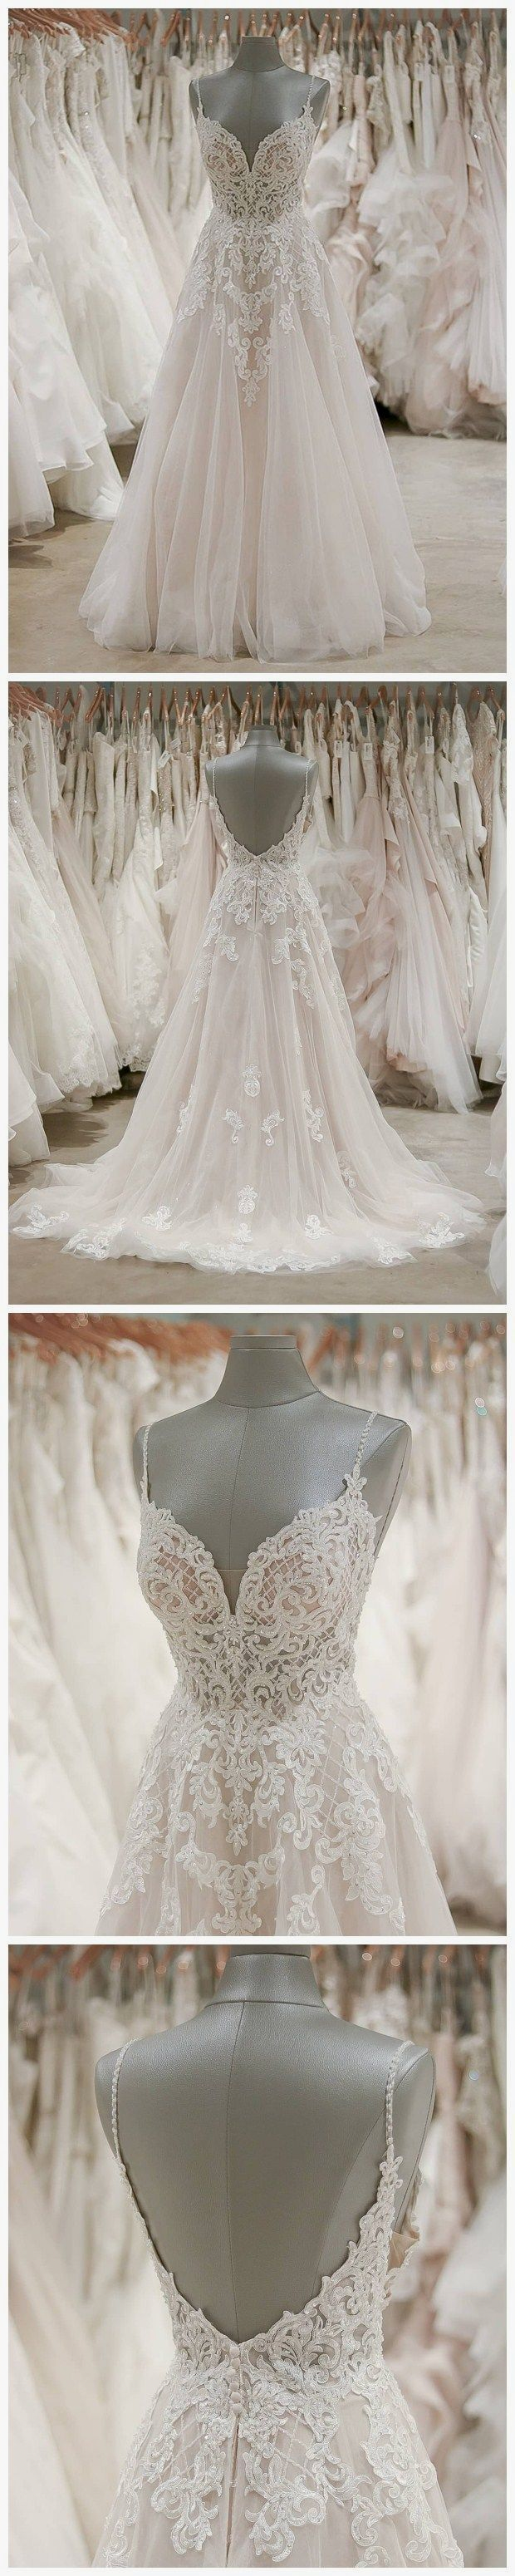 Elegant wedding dress. Forget about the soon-to-be husband, for the present time…